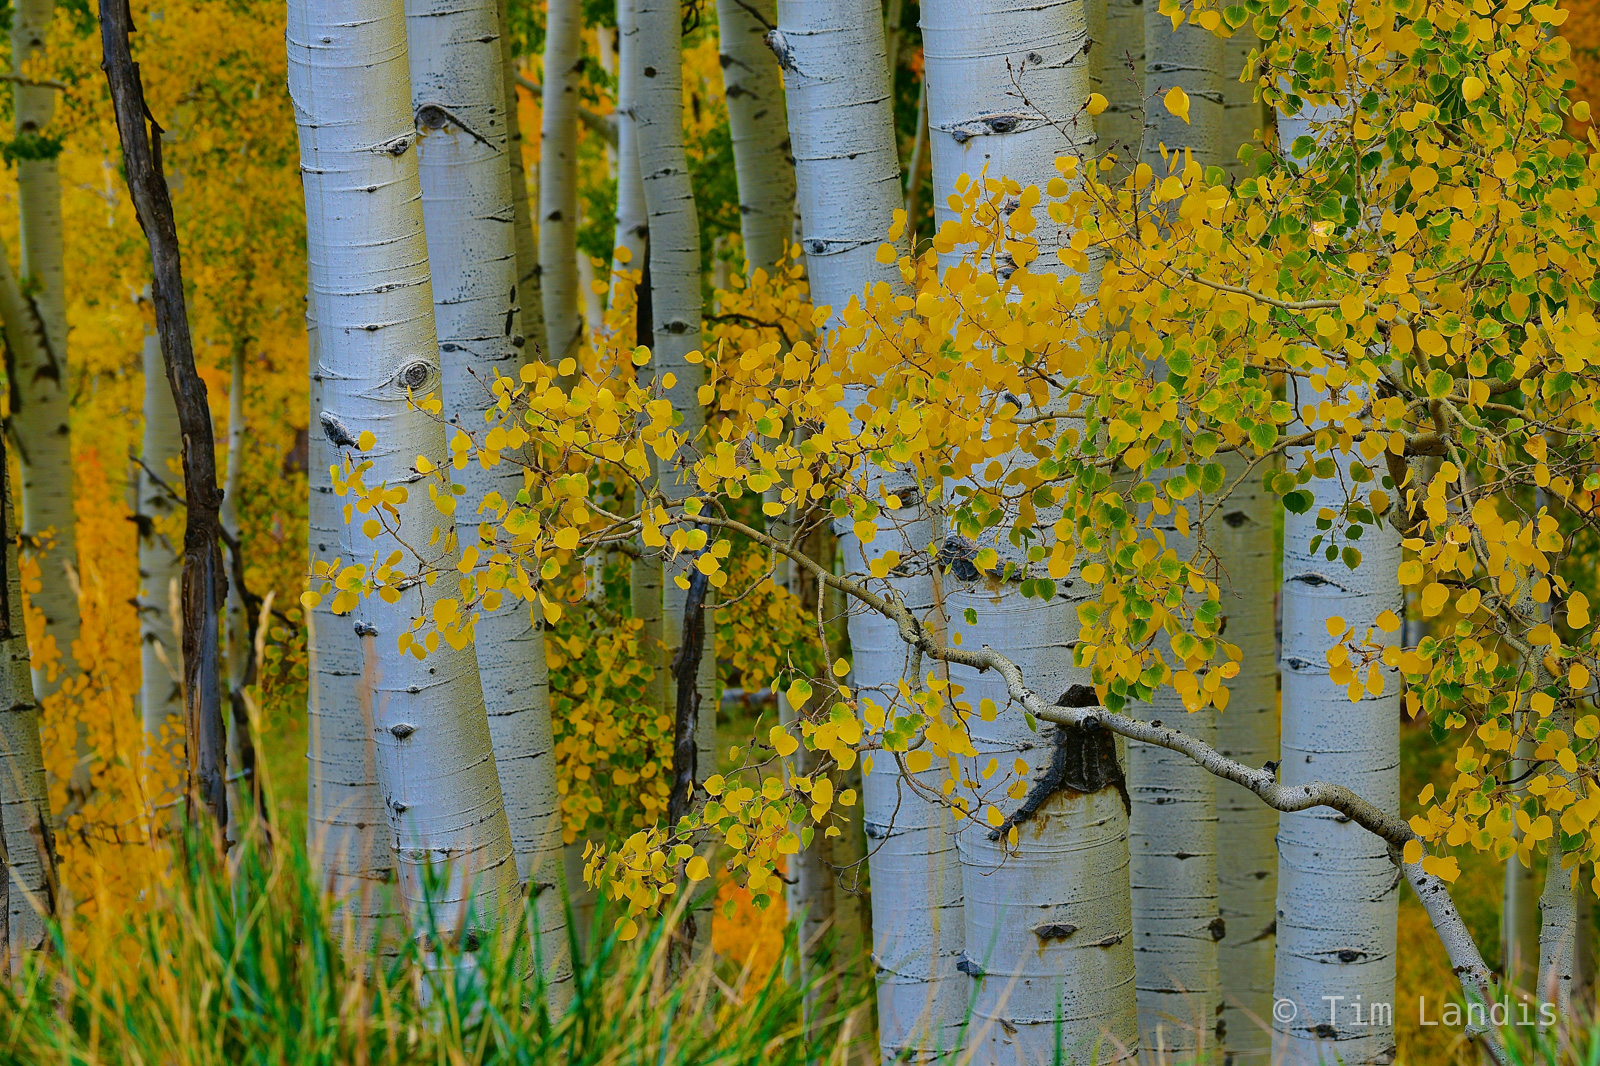 Aspen trunks with fall folliage, photo